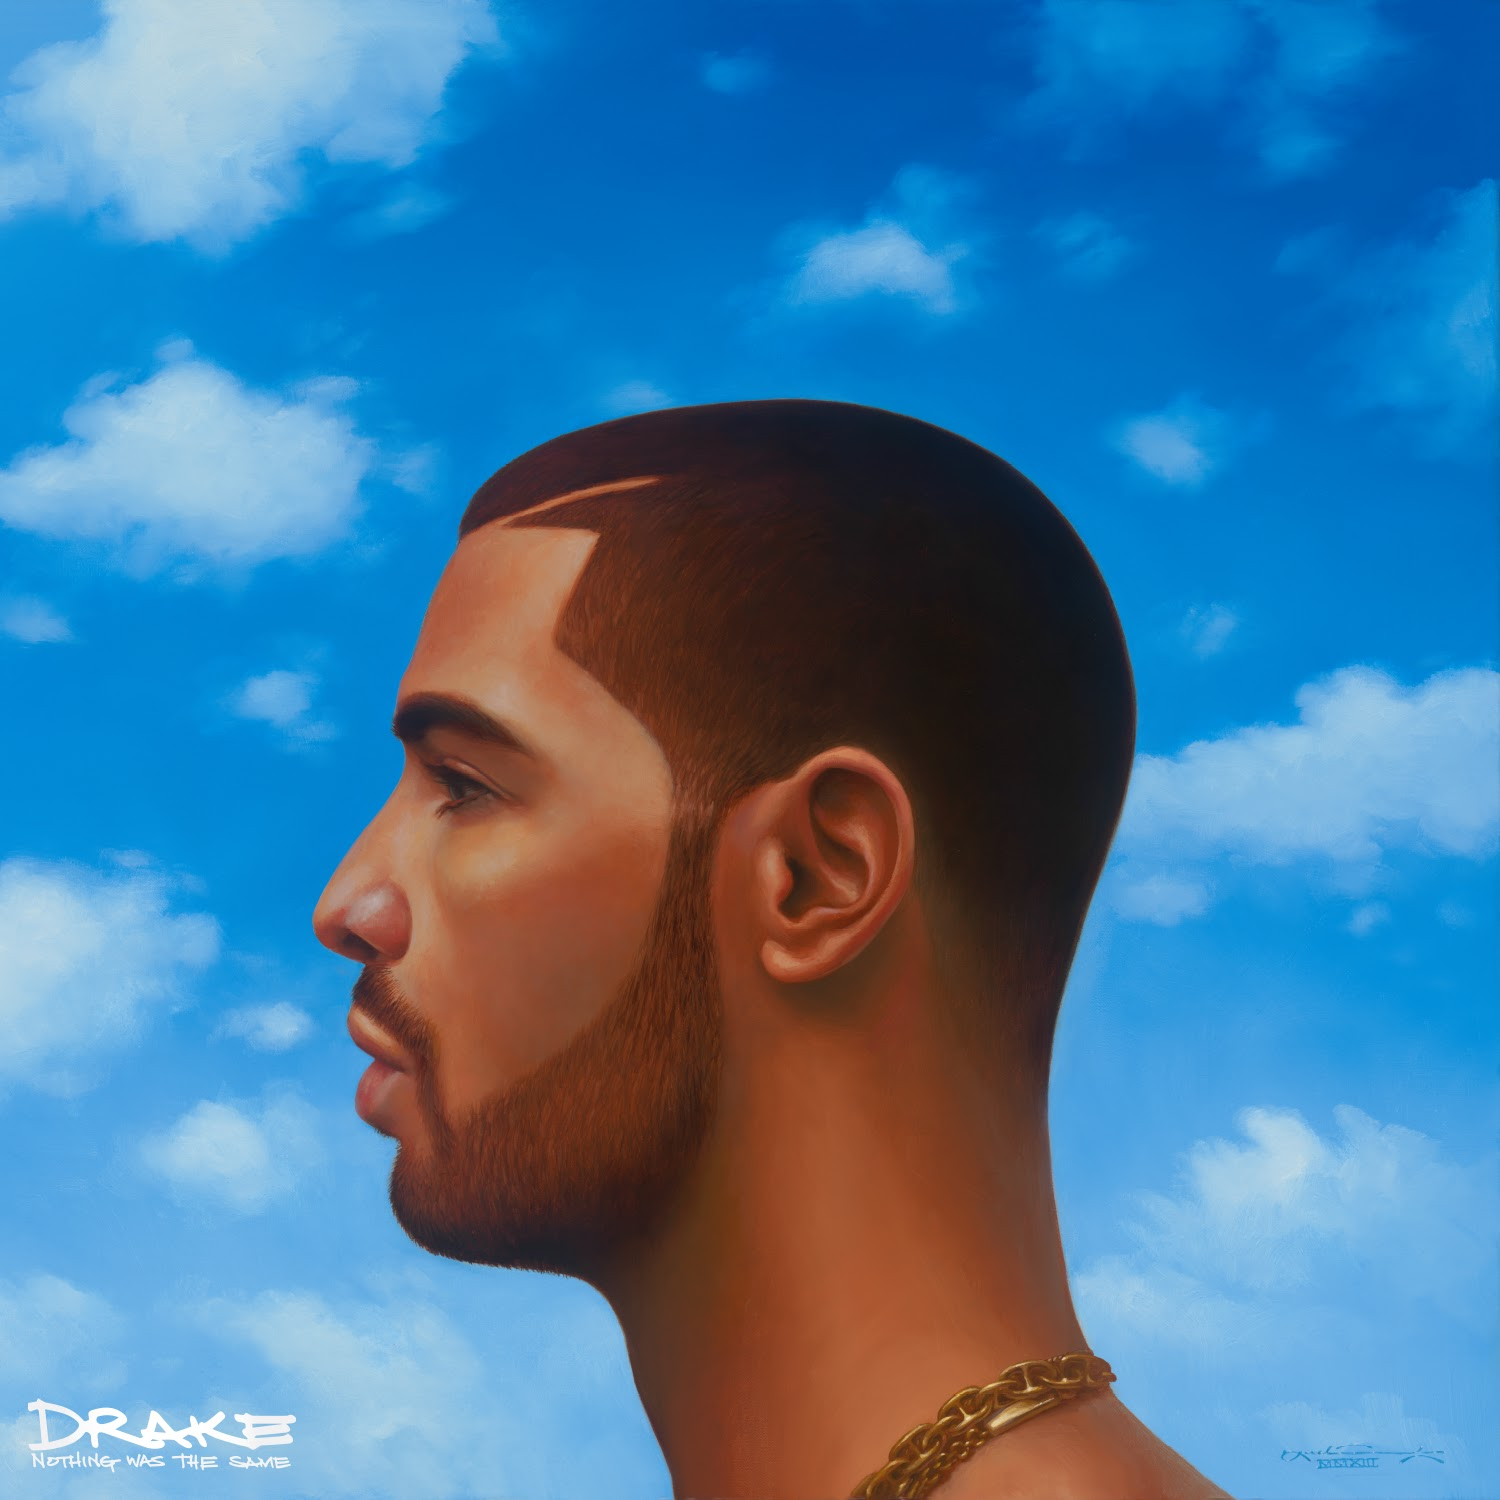 LISTEN: Drake Nothing Was The Same – Full Album